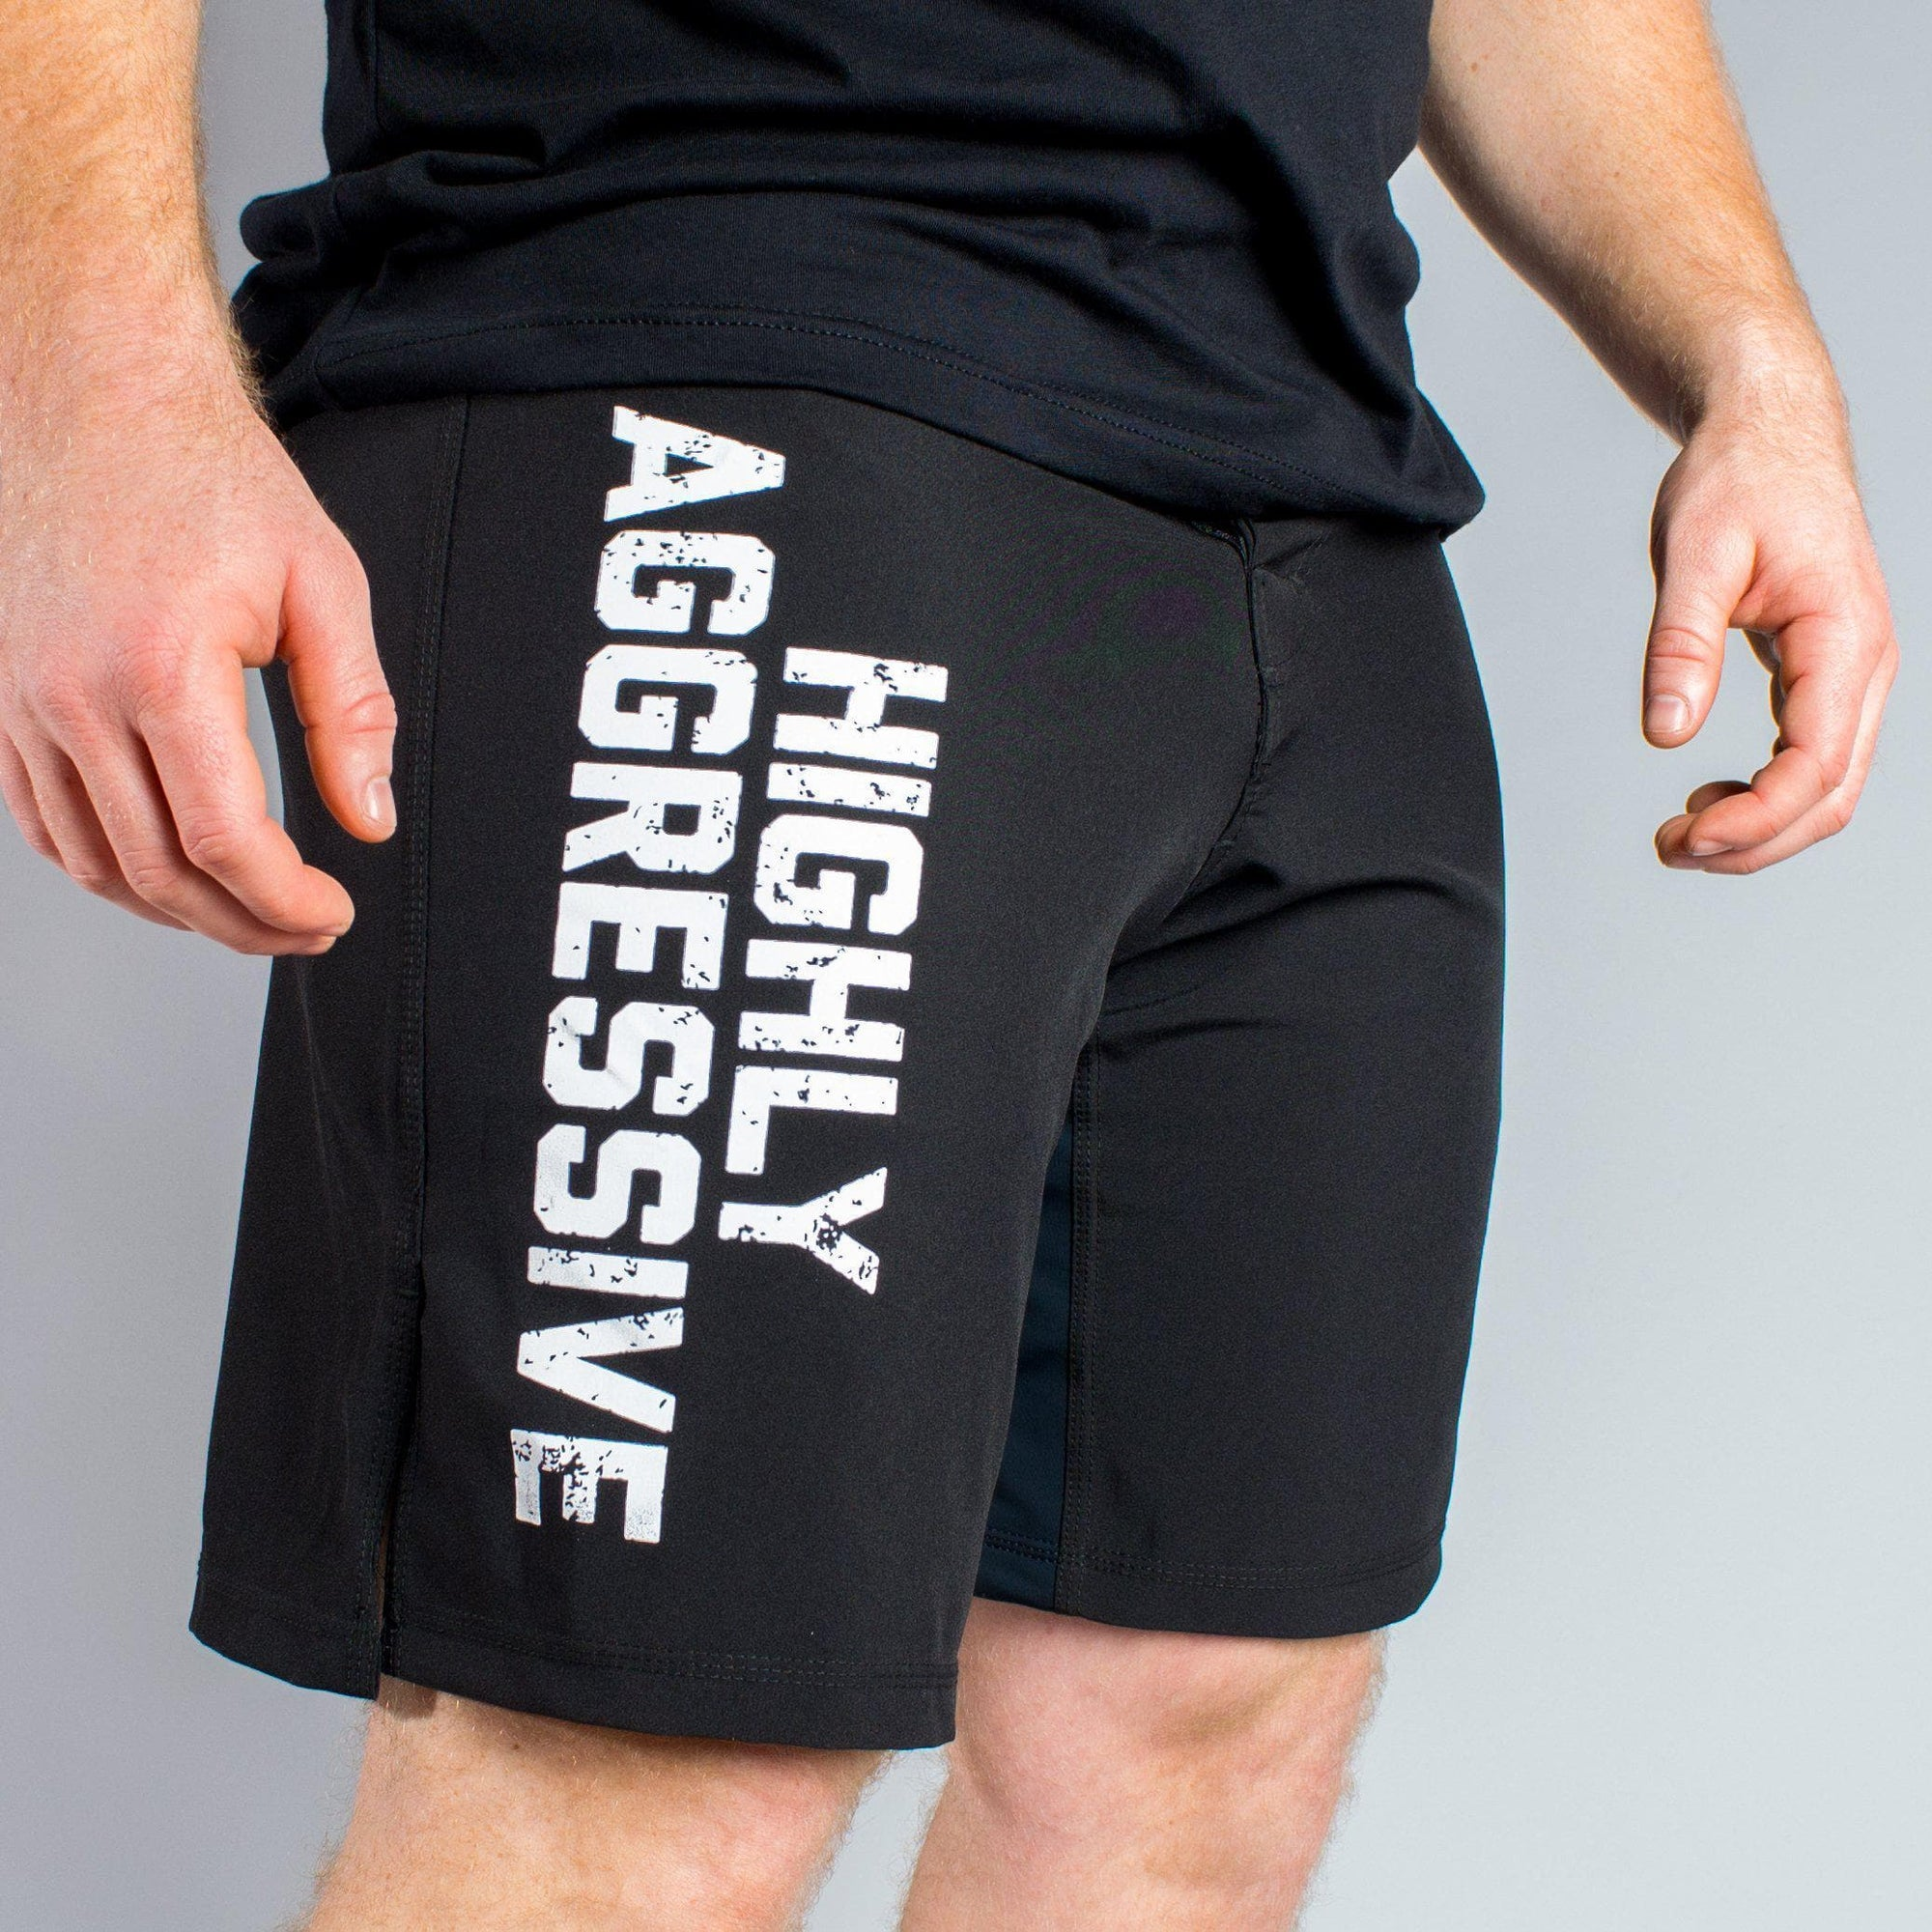 HIGHLY AGGRESSIVE WOD Shorts